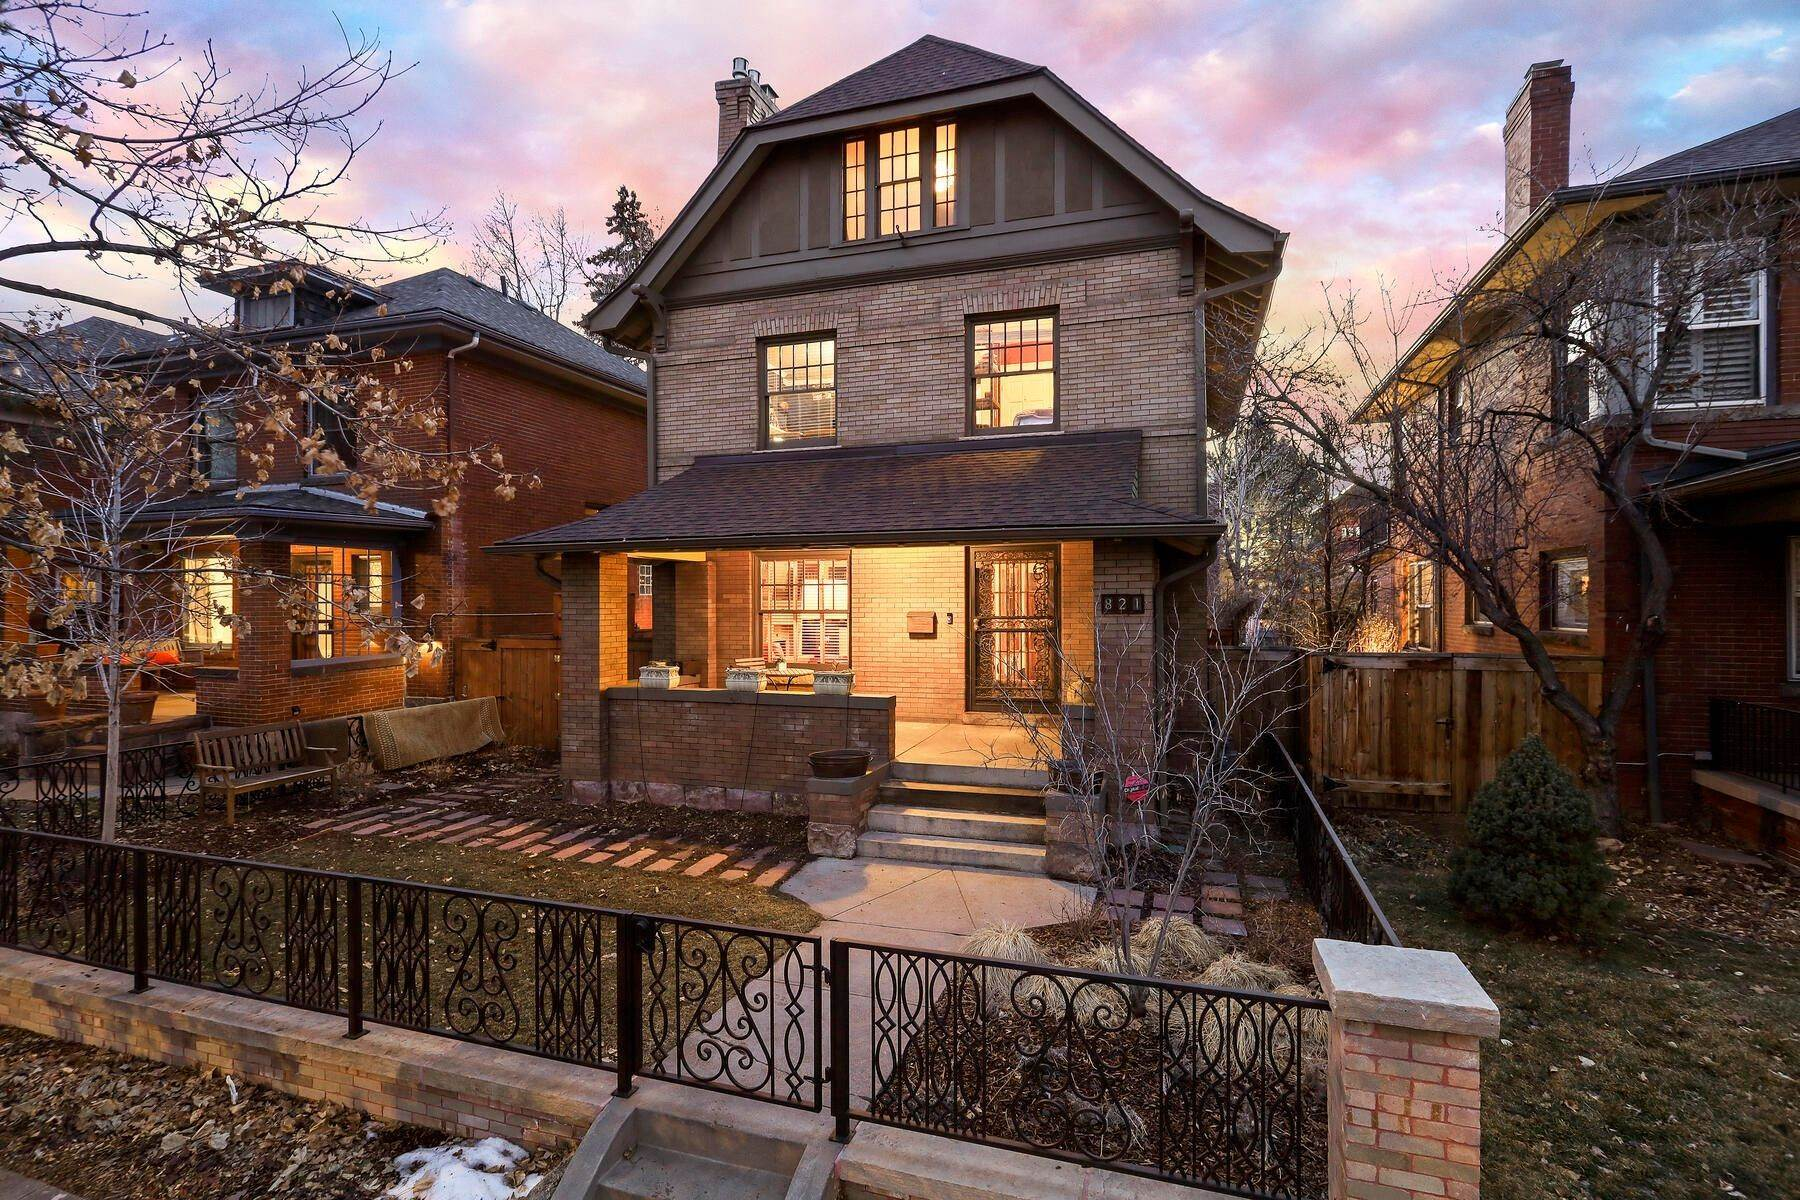 Single Family Homes for Sale at 821 N Marion Street, Denver, Co, 80218 821 N Marion Street Denver, Colorado 80218 United States